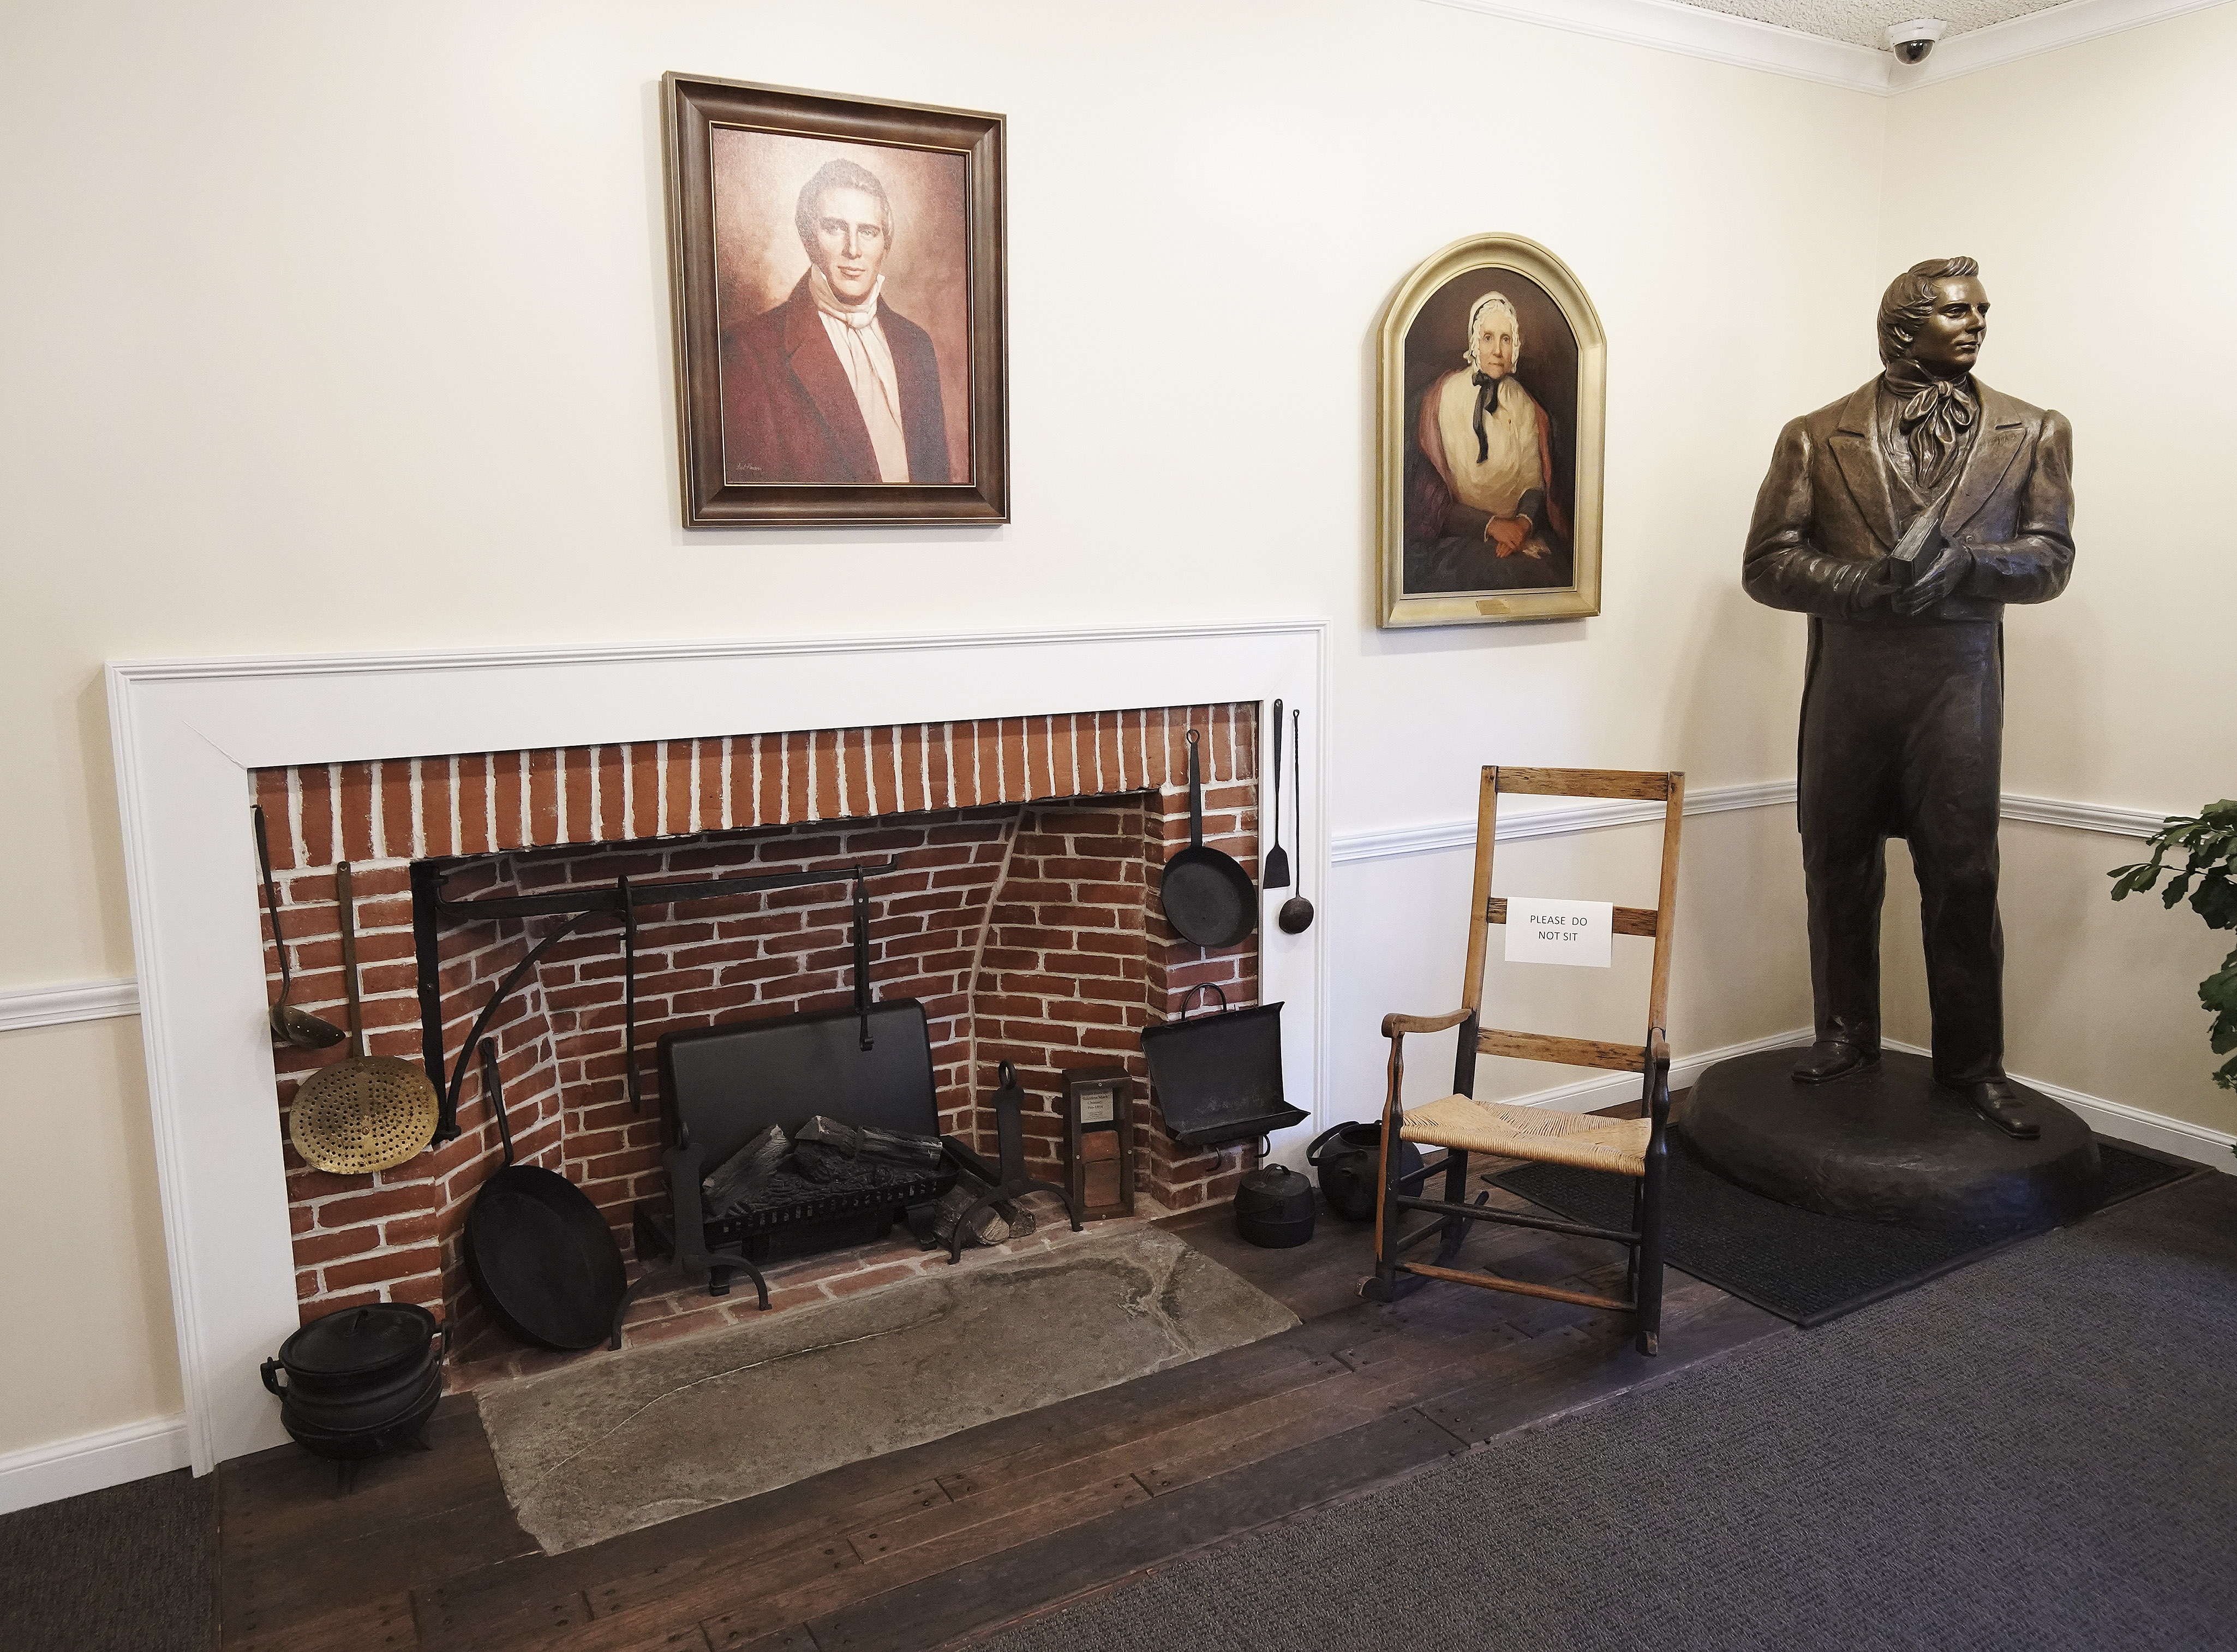 Displayed items in the visitors center at the Joseph Smith Birthplace Memorial in Sharon, Vt., on Saturday, Oct. 19, 2019.